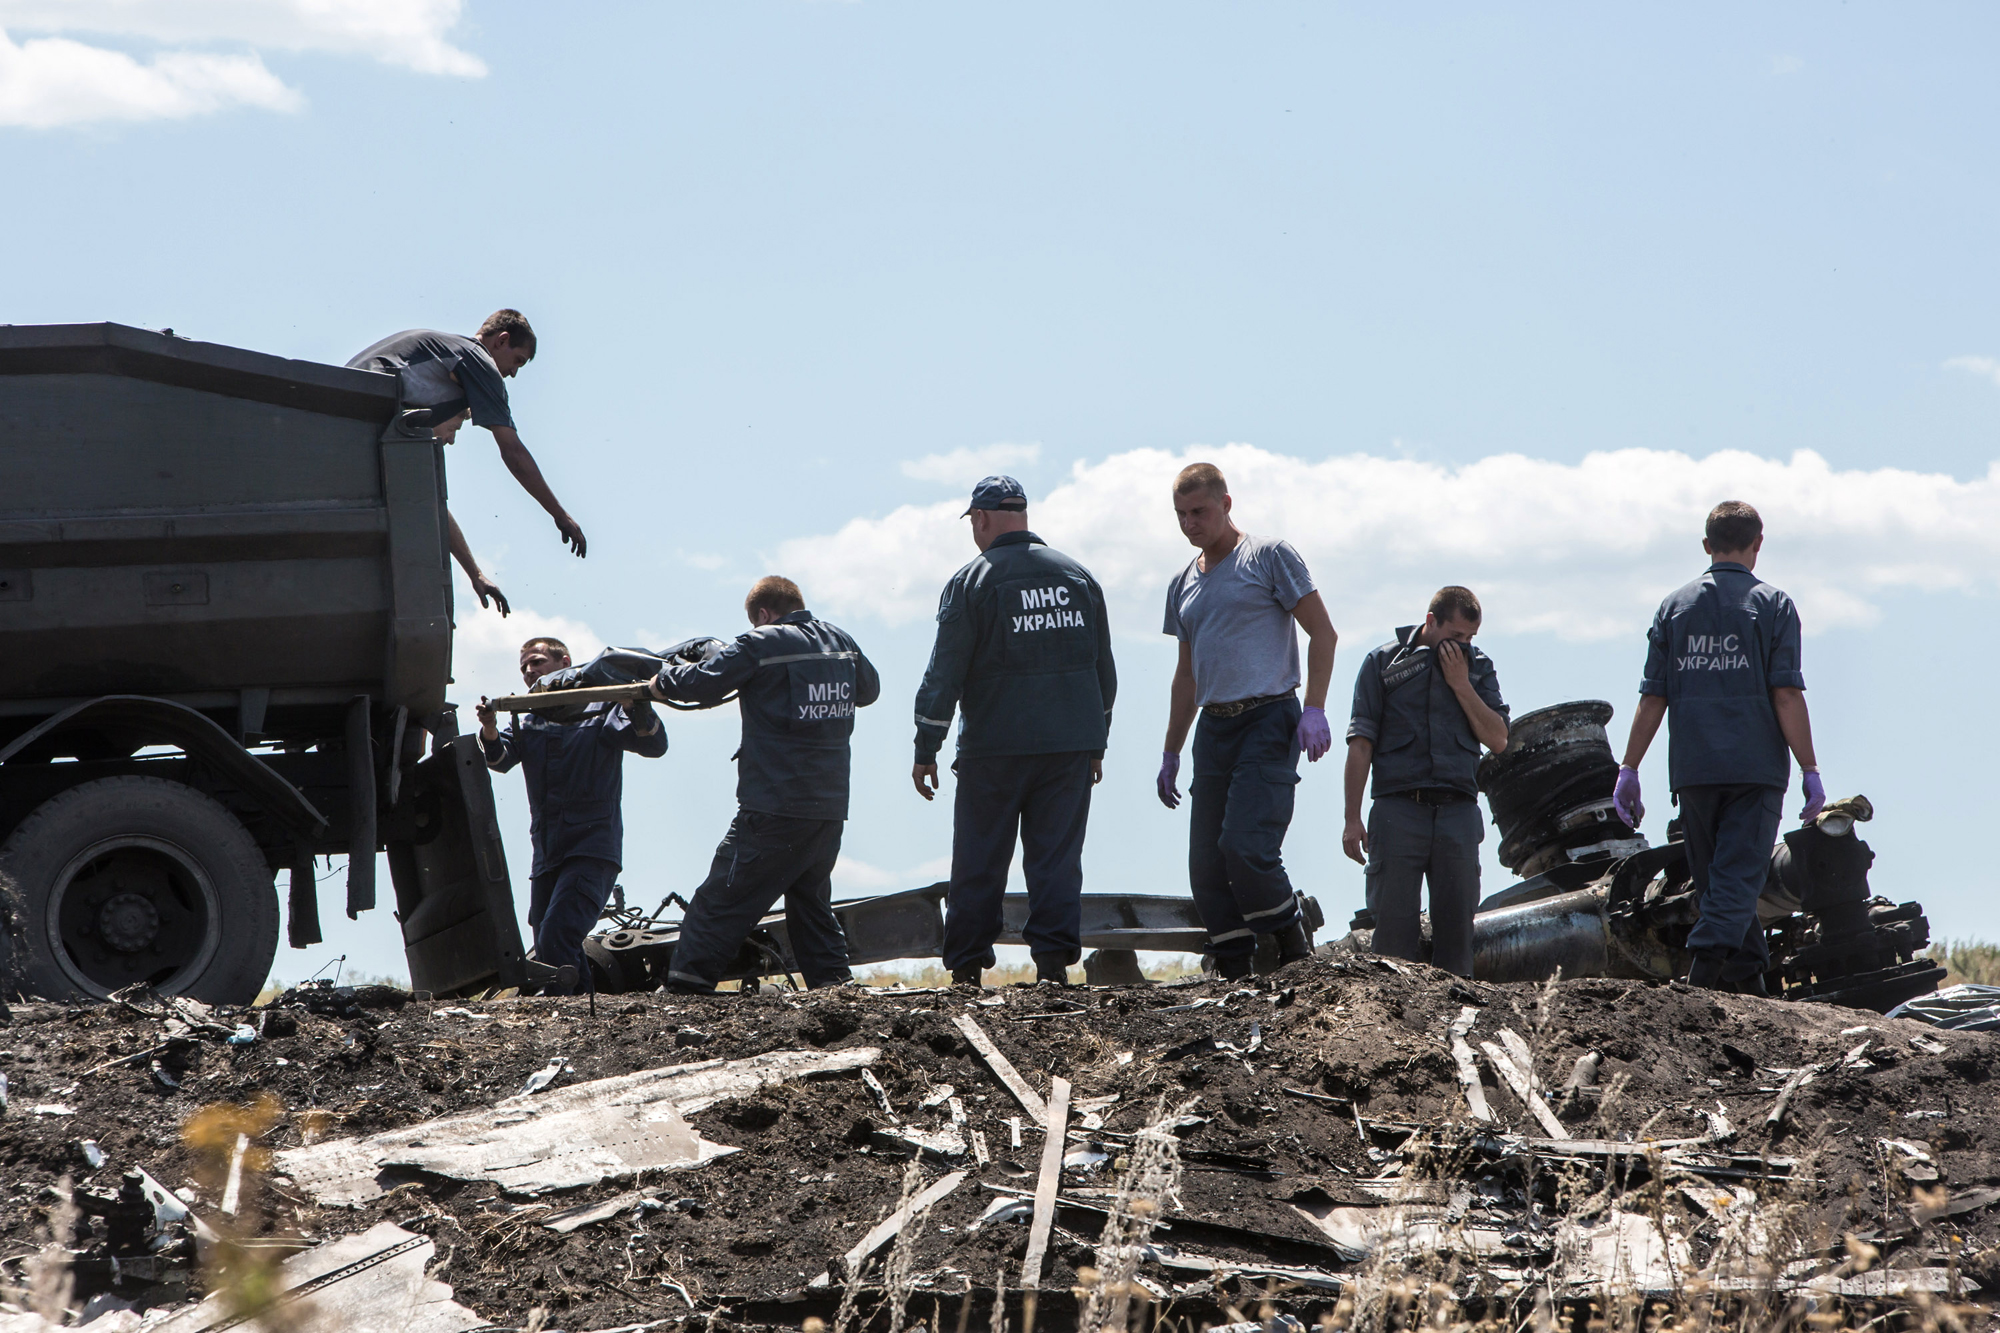 Personnel from the Ukrainian Emergencies Ministry load the bodies of victims of Malaysia Airlines flight MH17 into a truck at the crash site on July 21, 2014 in Grabovo, Ukraine.